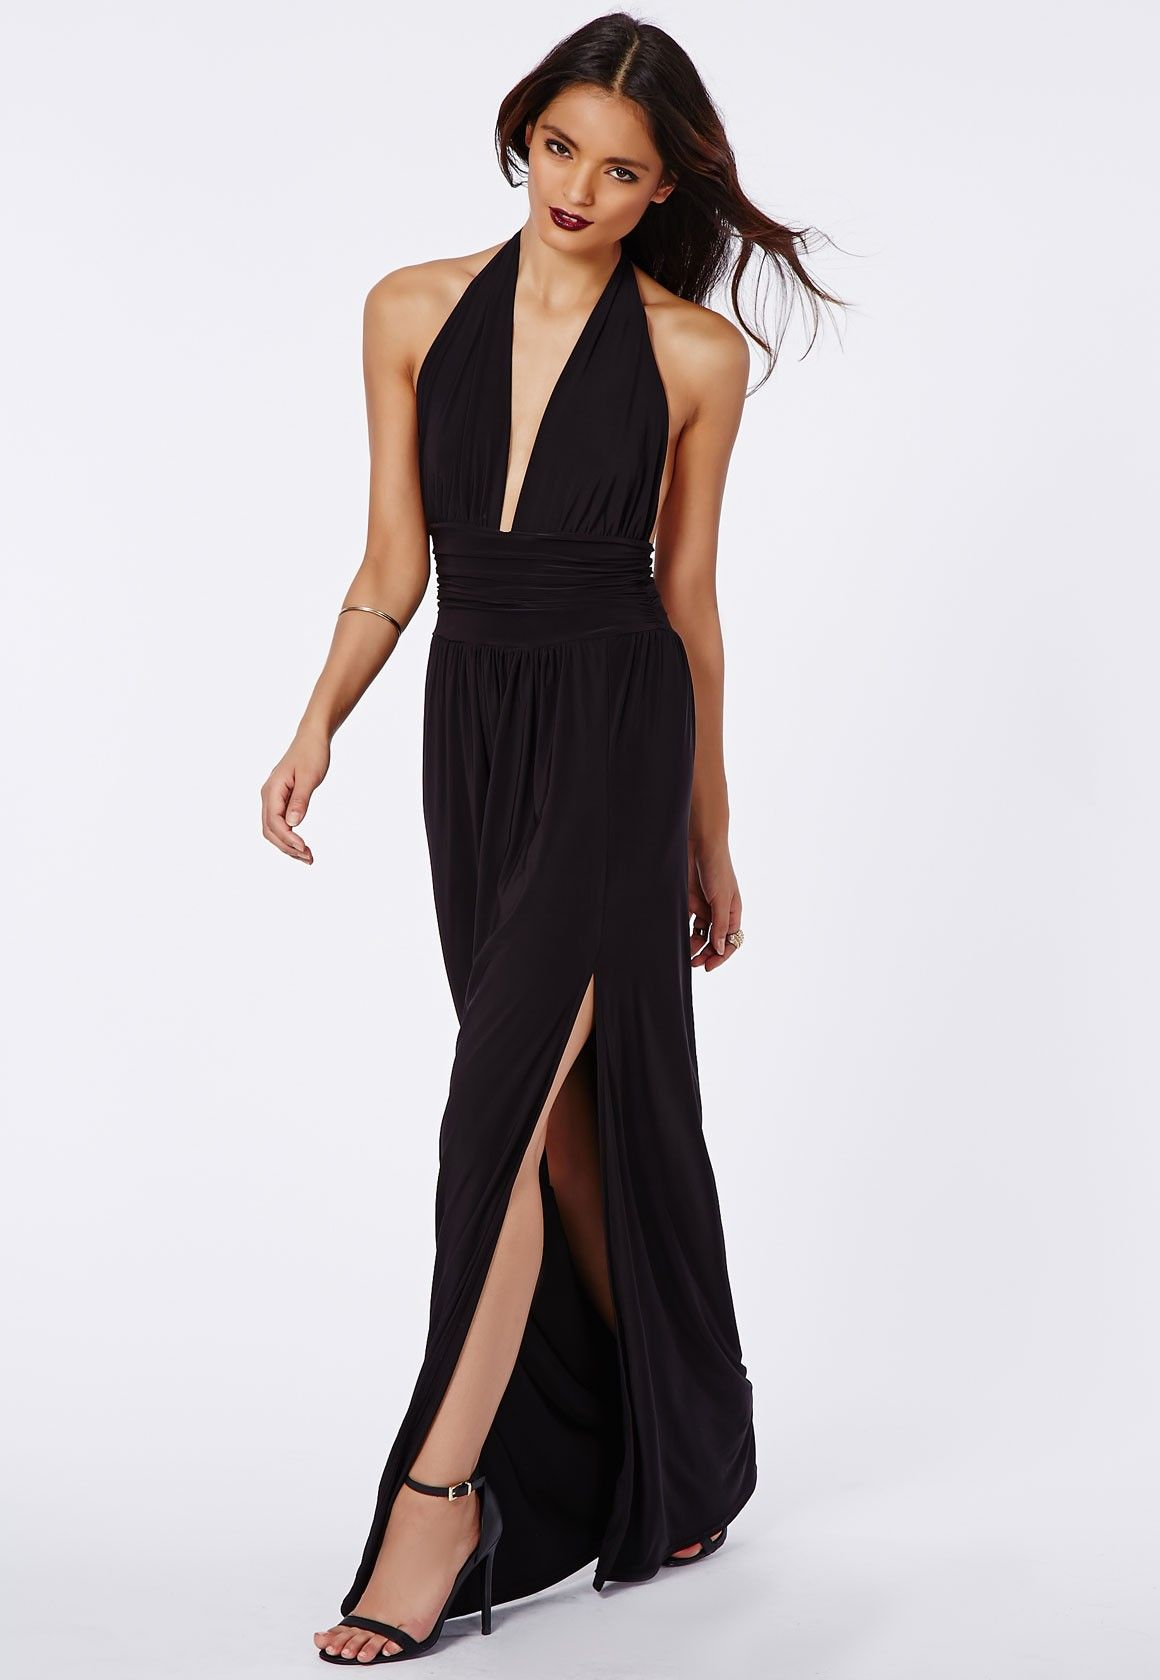 Long-Black-Maxi-Dress-1-1 | Black Maxi Dress | Pinterest | Dress ...